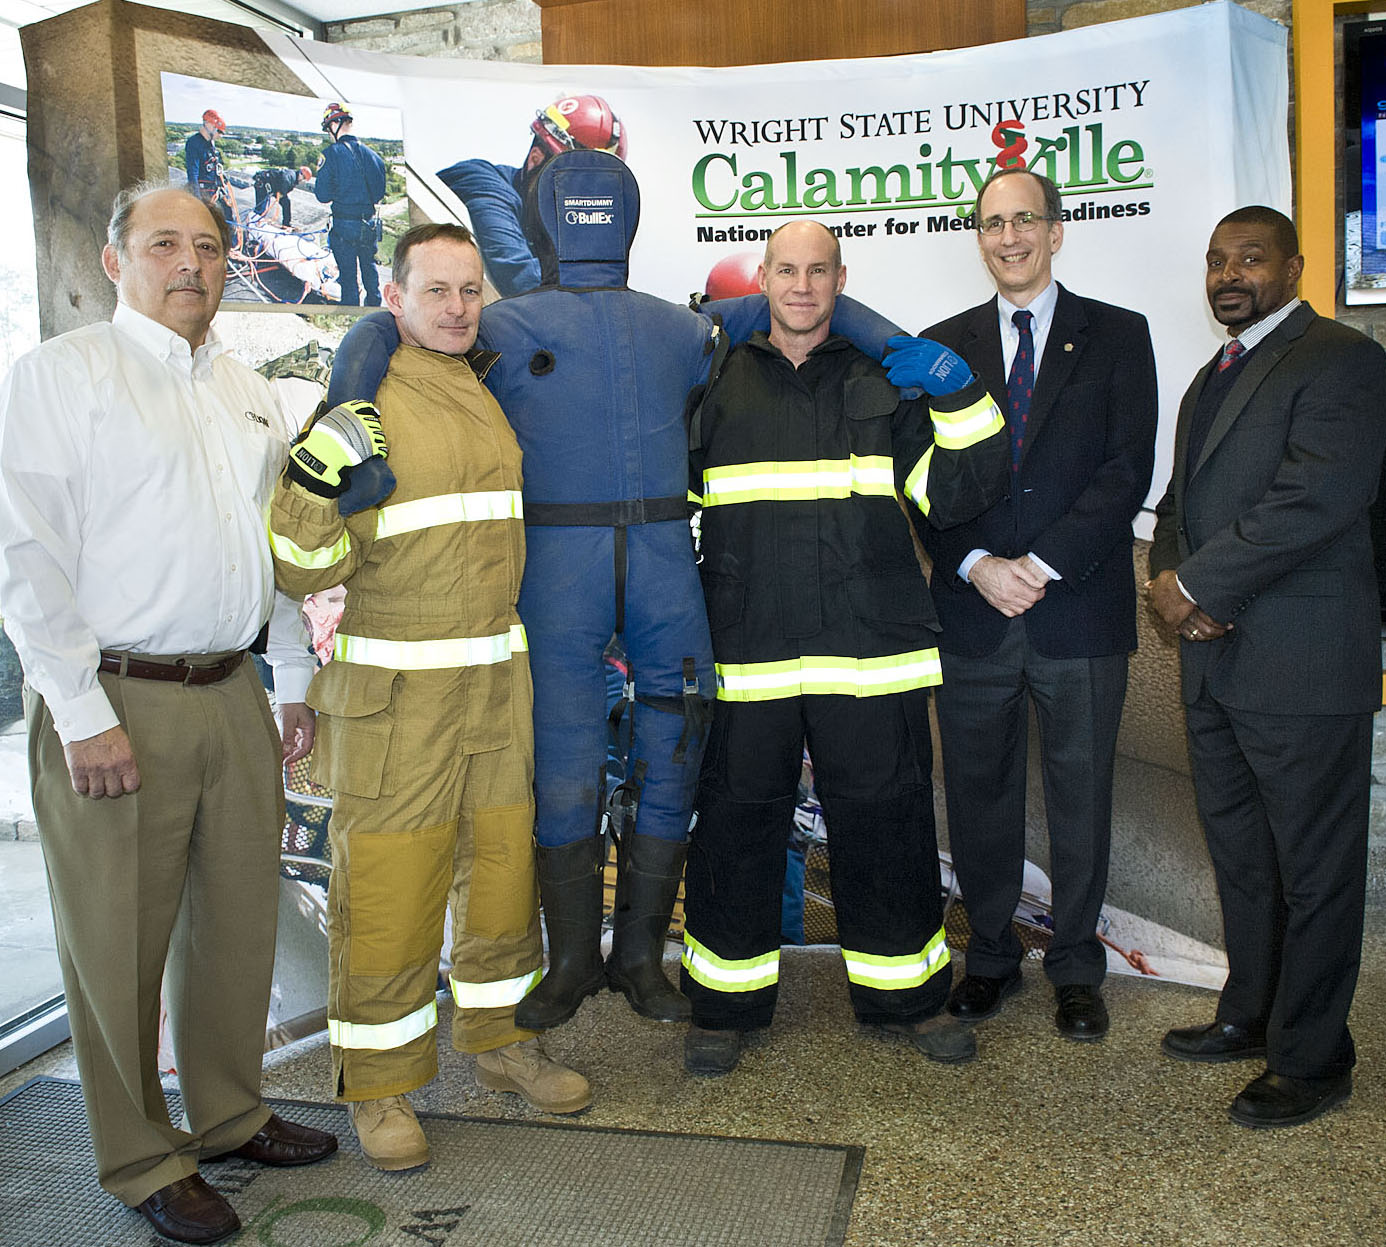 National Center of Medical Readiness and LION officials